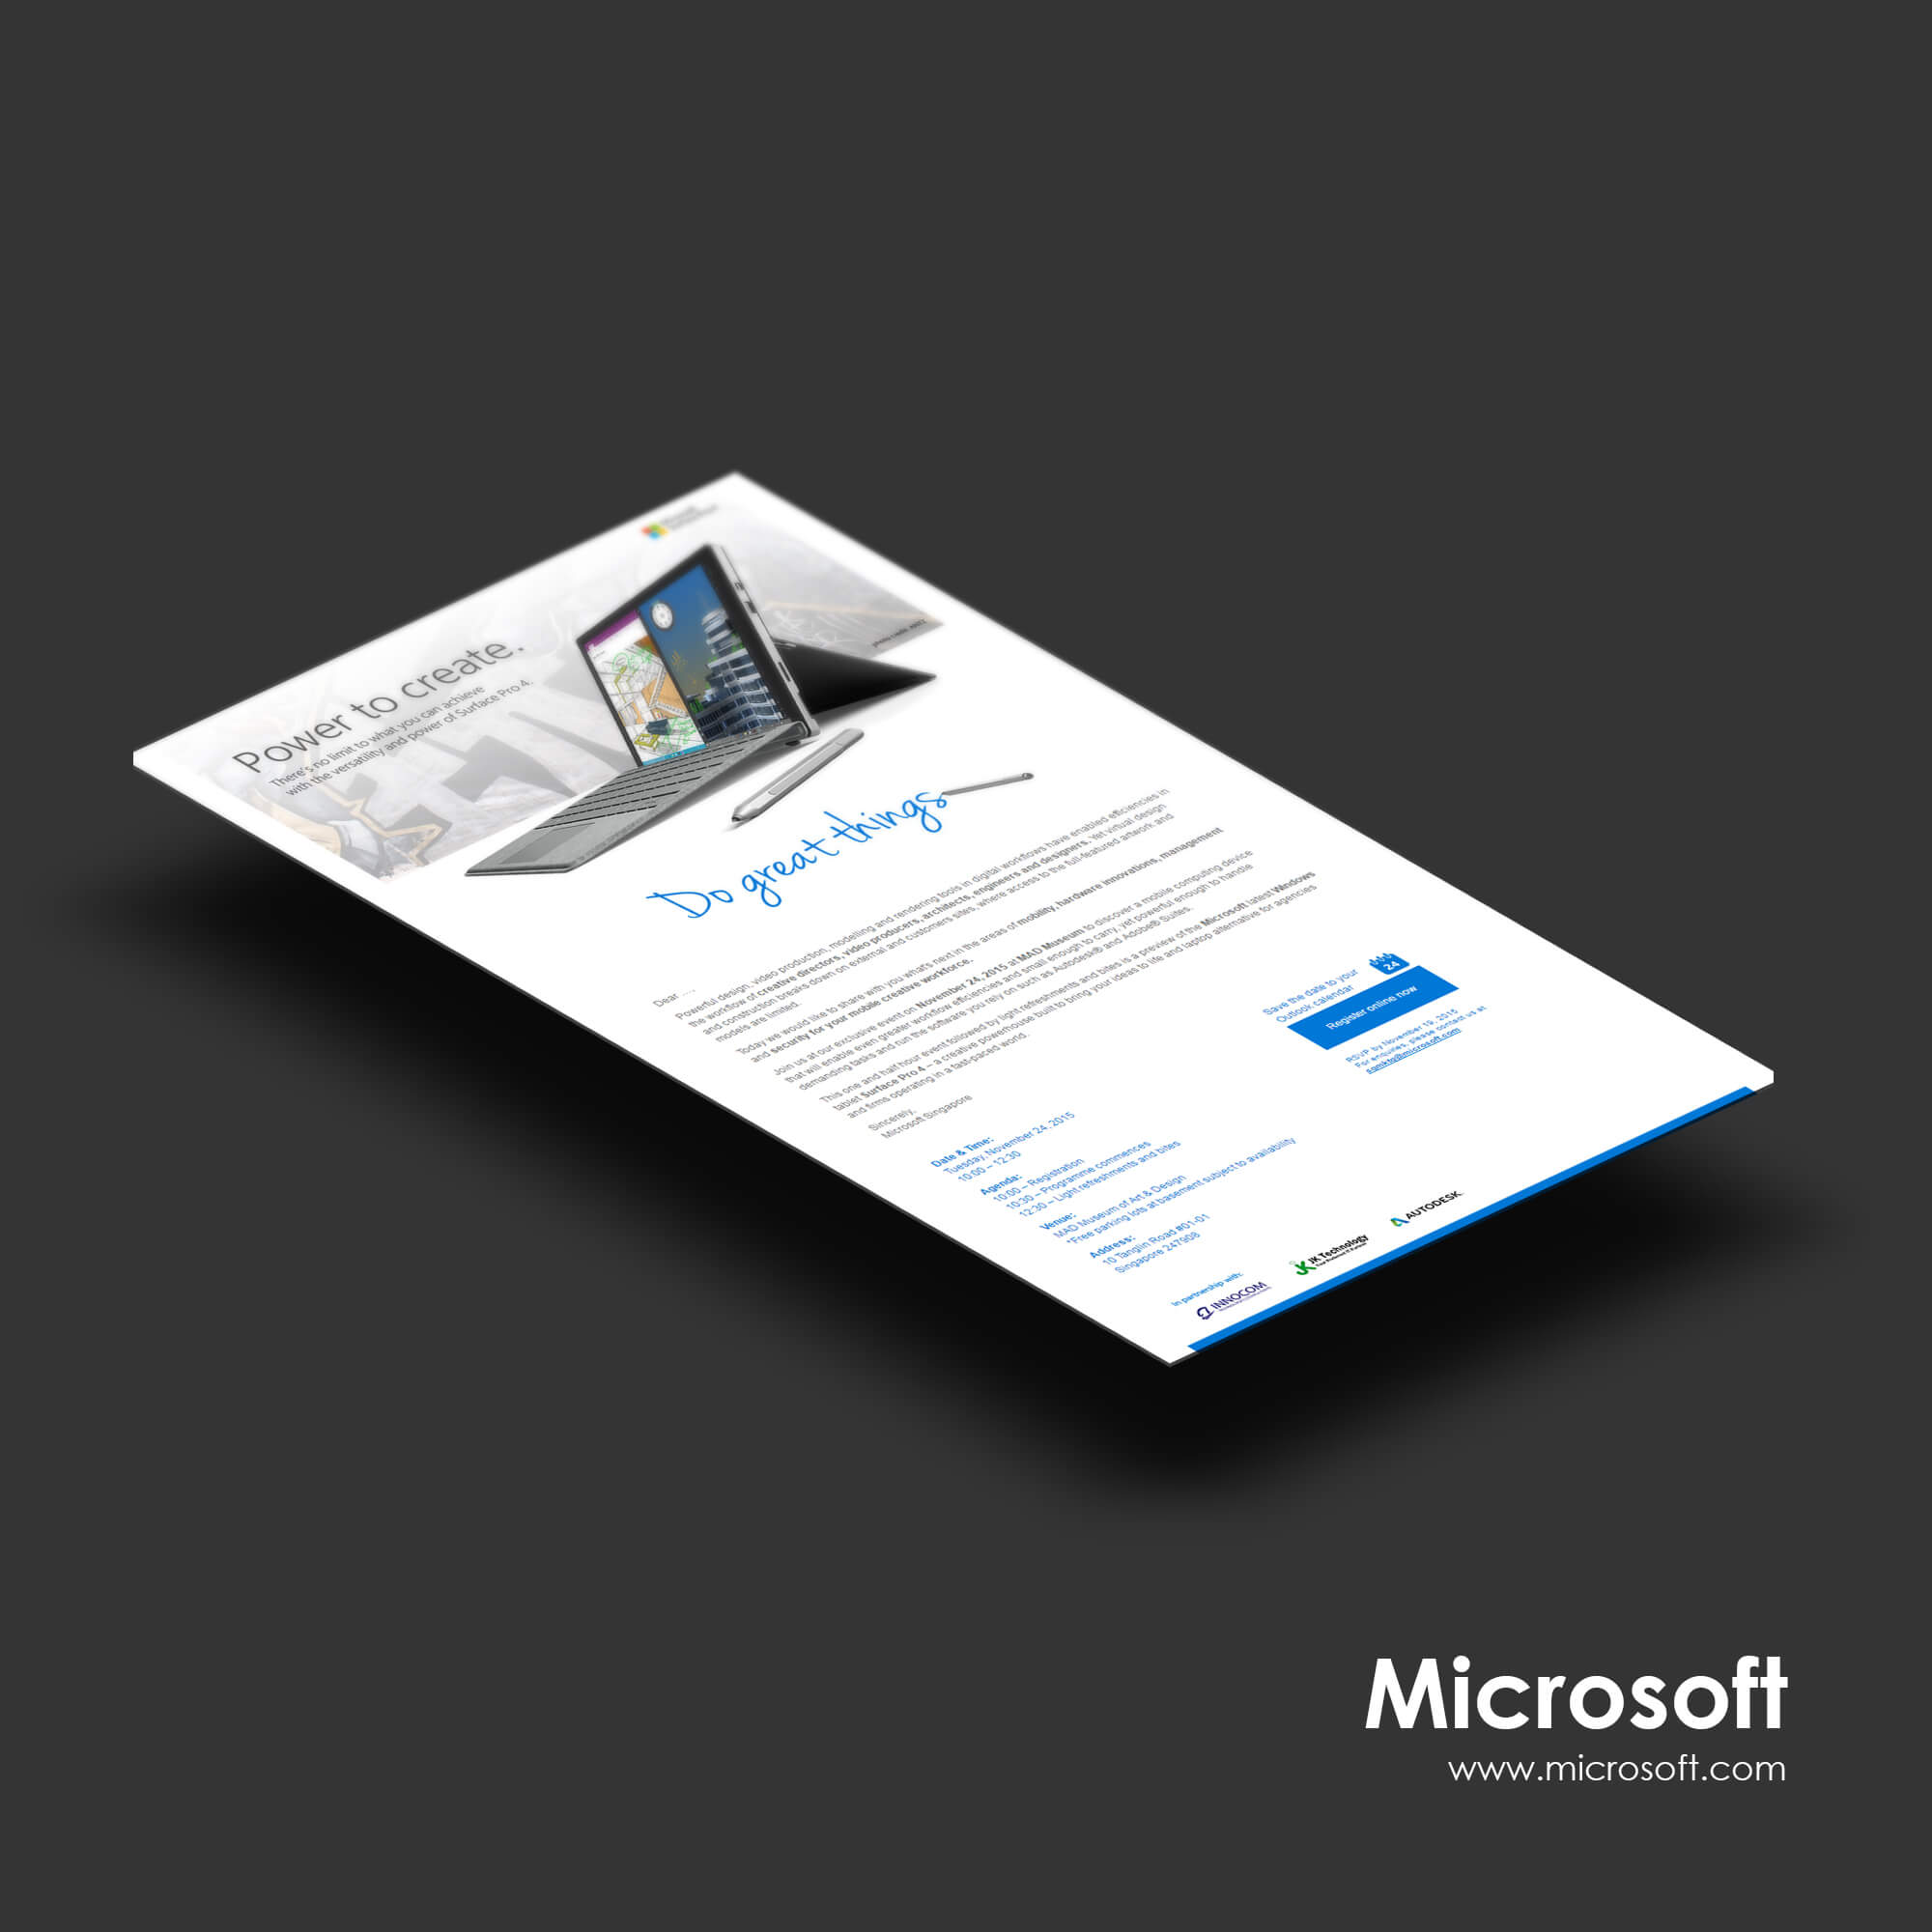 Singapore best web design microsoft edm design